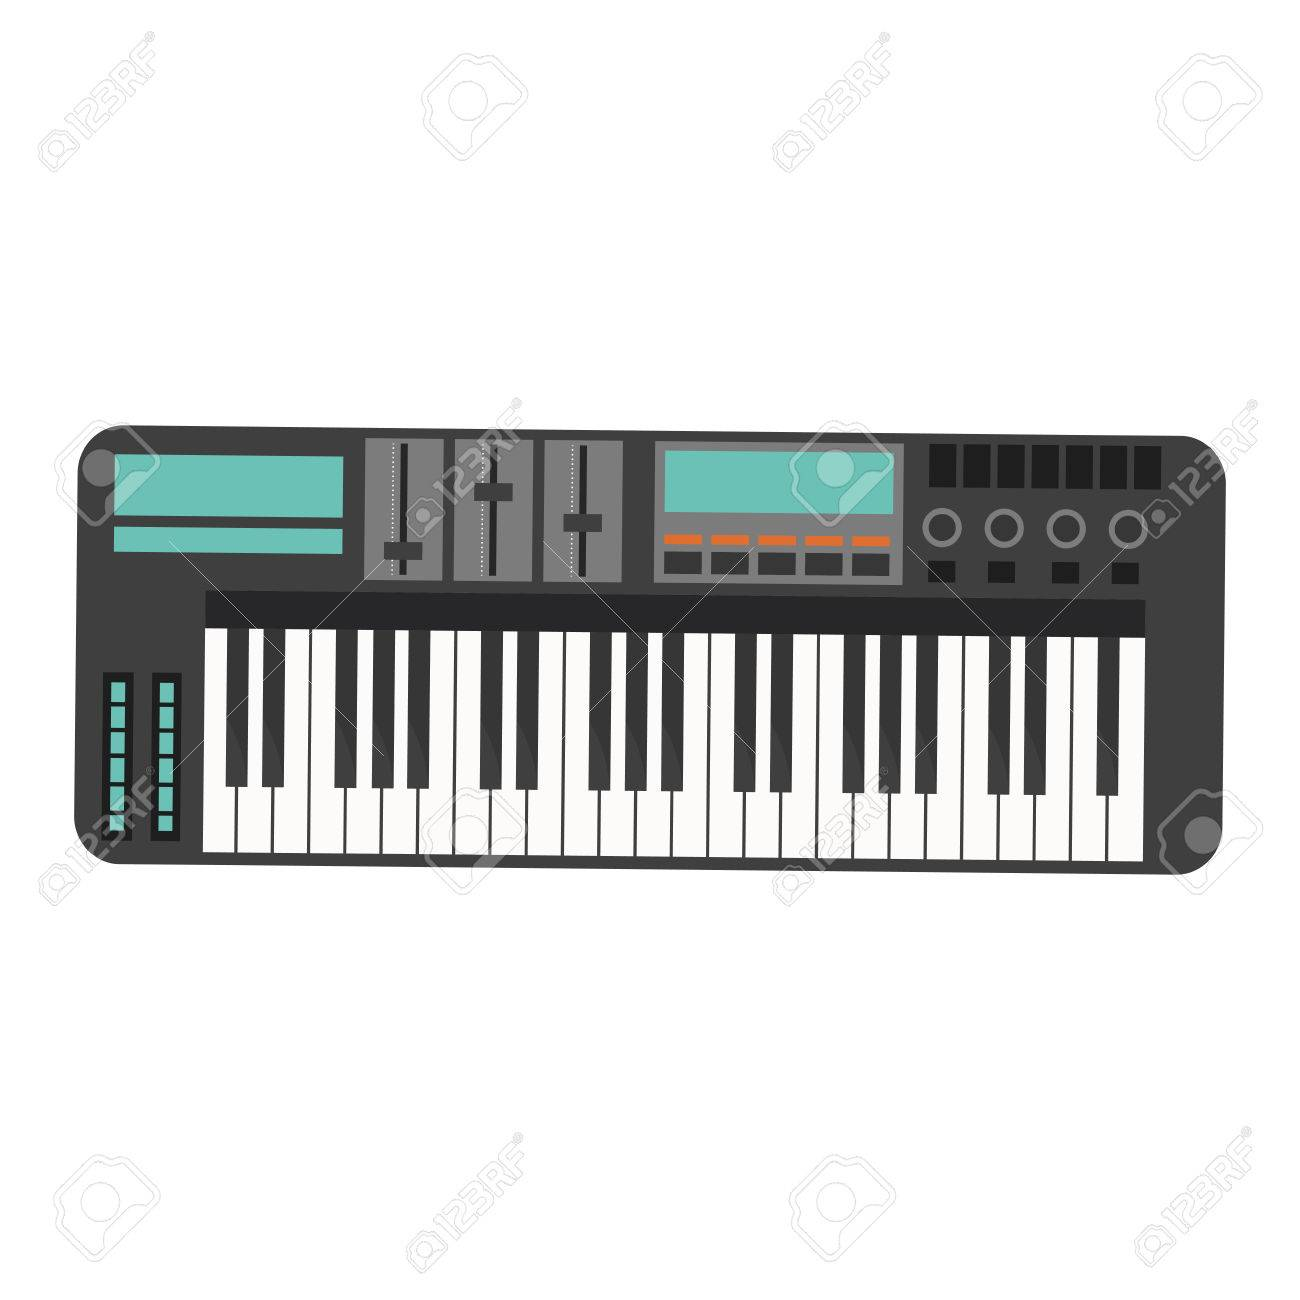 Flat Design Electronic Piano Keyboard Icon Vector Illustration Stock